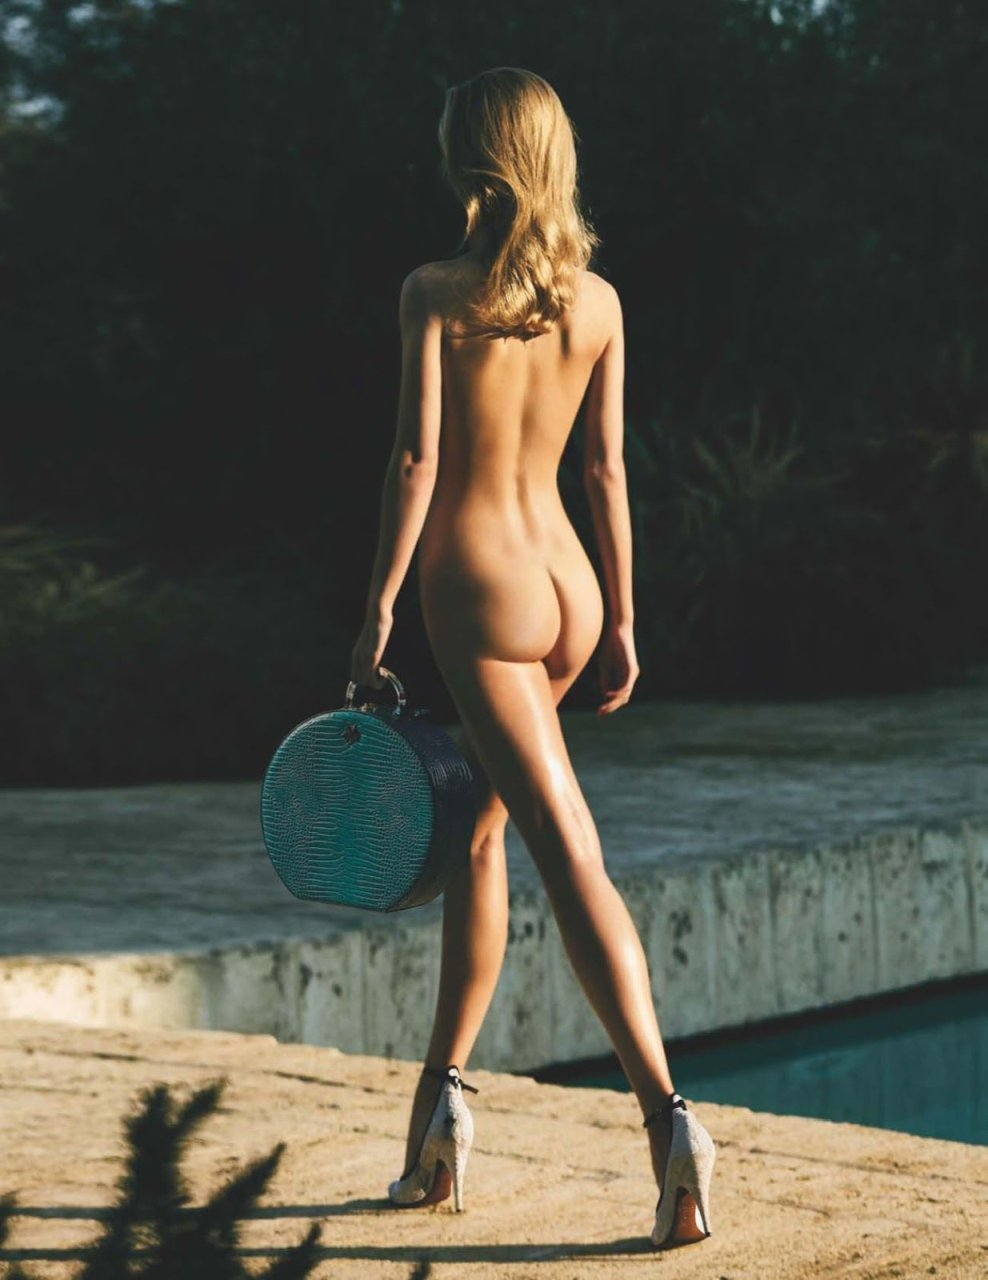 Topless Nude Rianne Haspels naked photo 2017